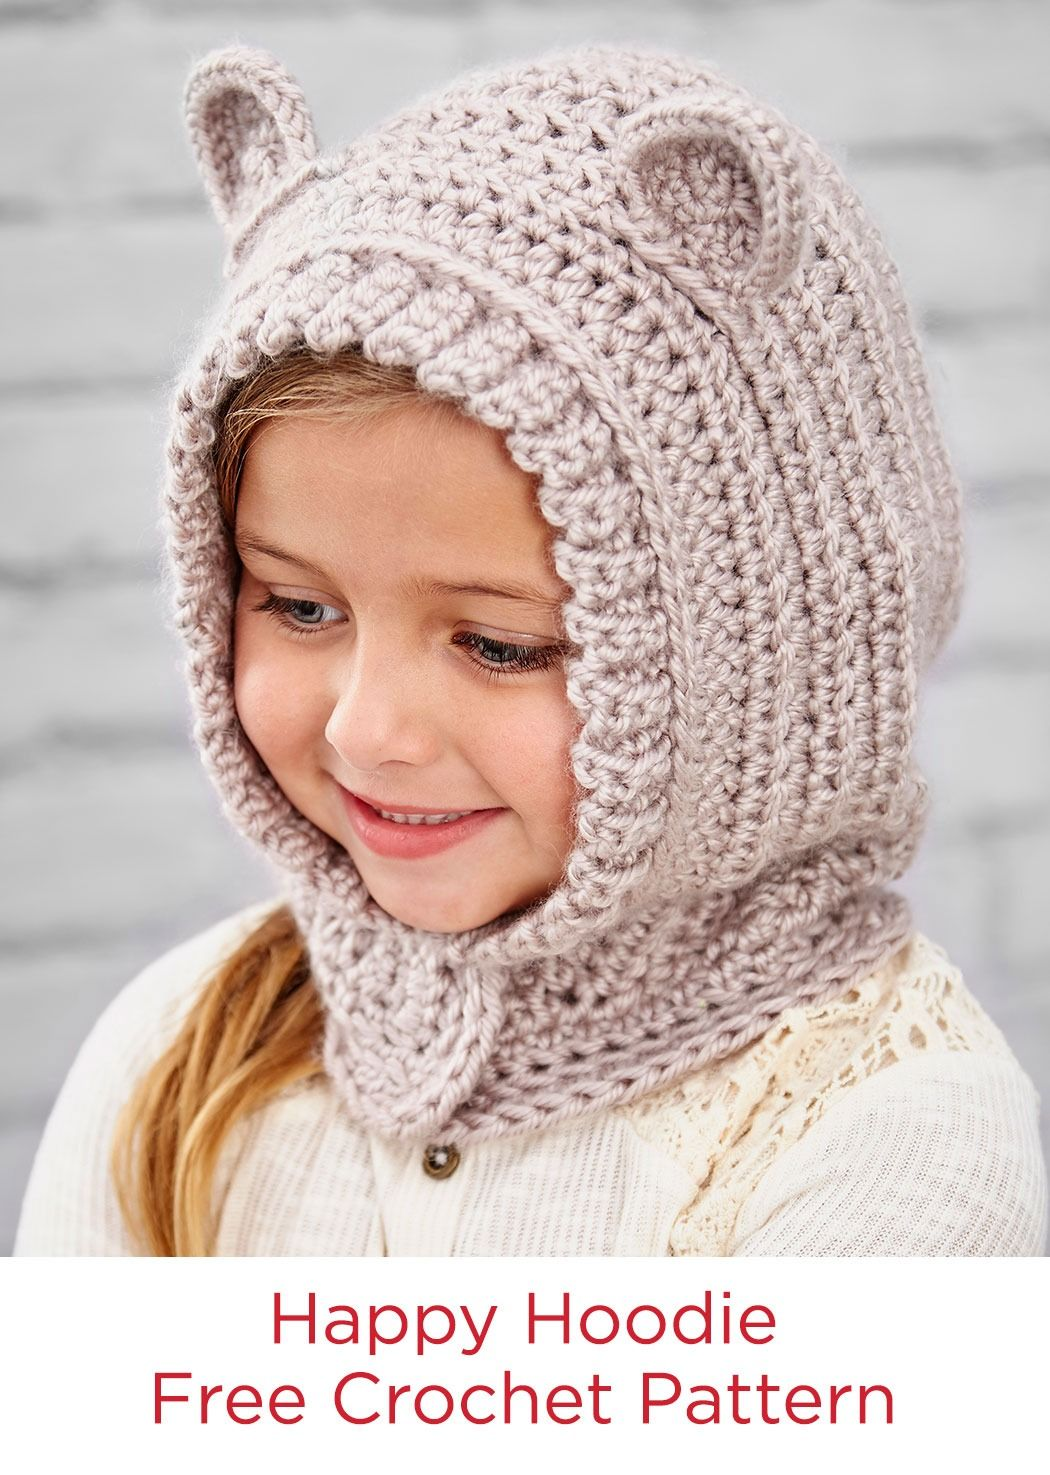 10121a96bde Happy Hoodie Free Crochet Pattern in Red Heart Yarns -- Kids will love  wearing this crocheted hood style hat. The ears make it extra cute and  perfect for ...